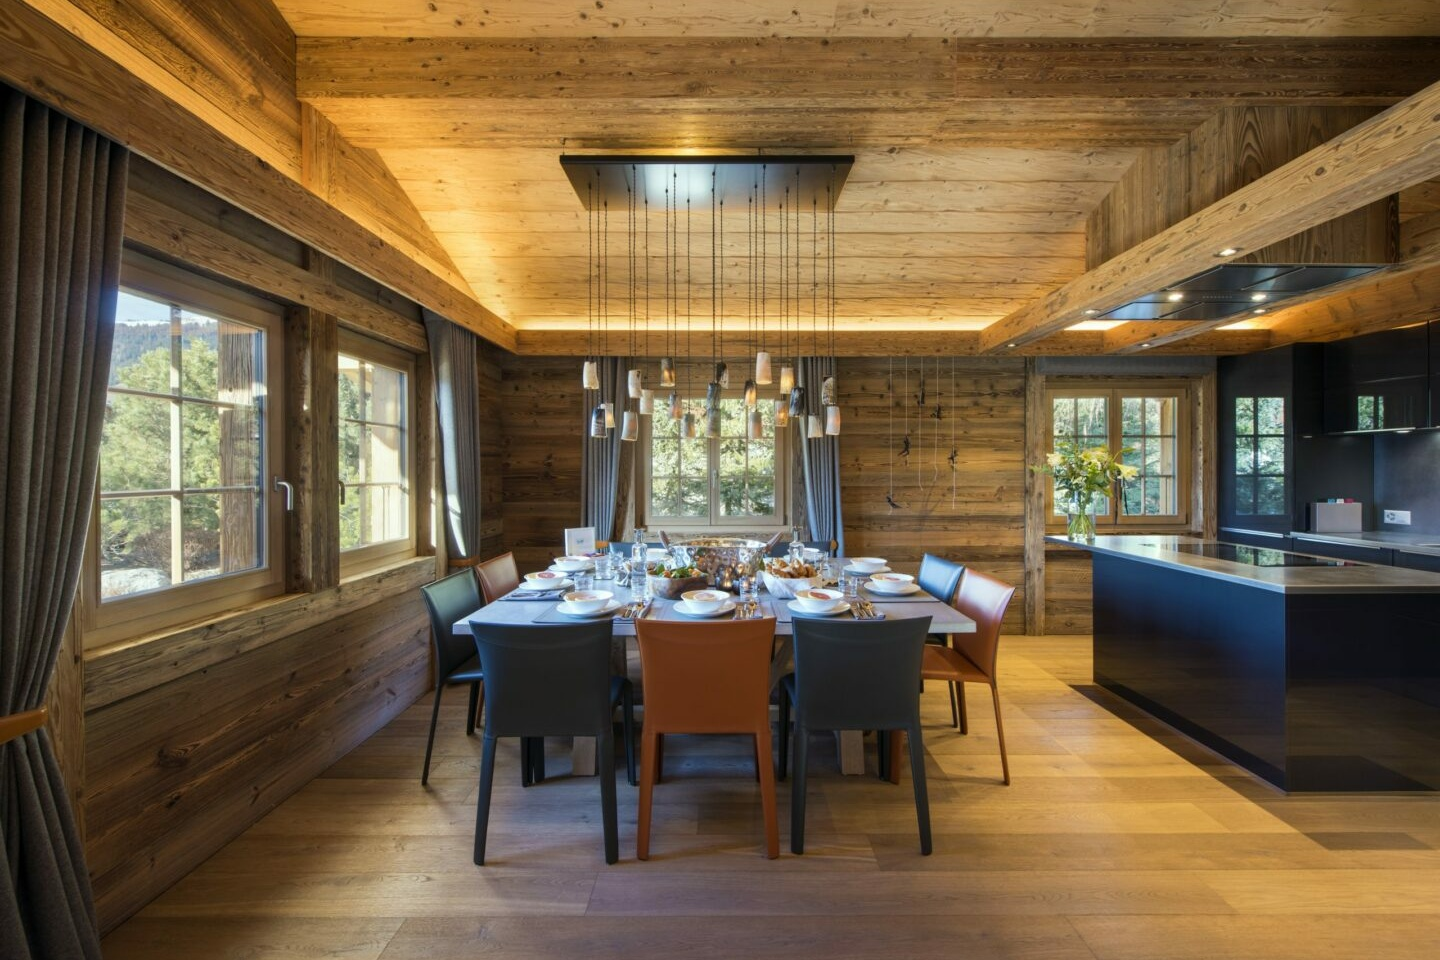 Kitchen and dining space at Chalet Daphne in Verbier